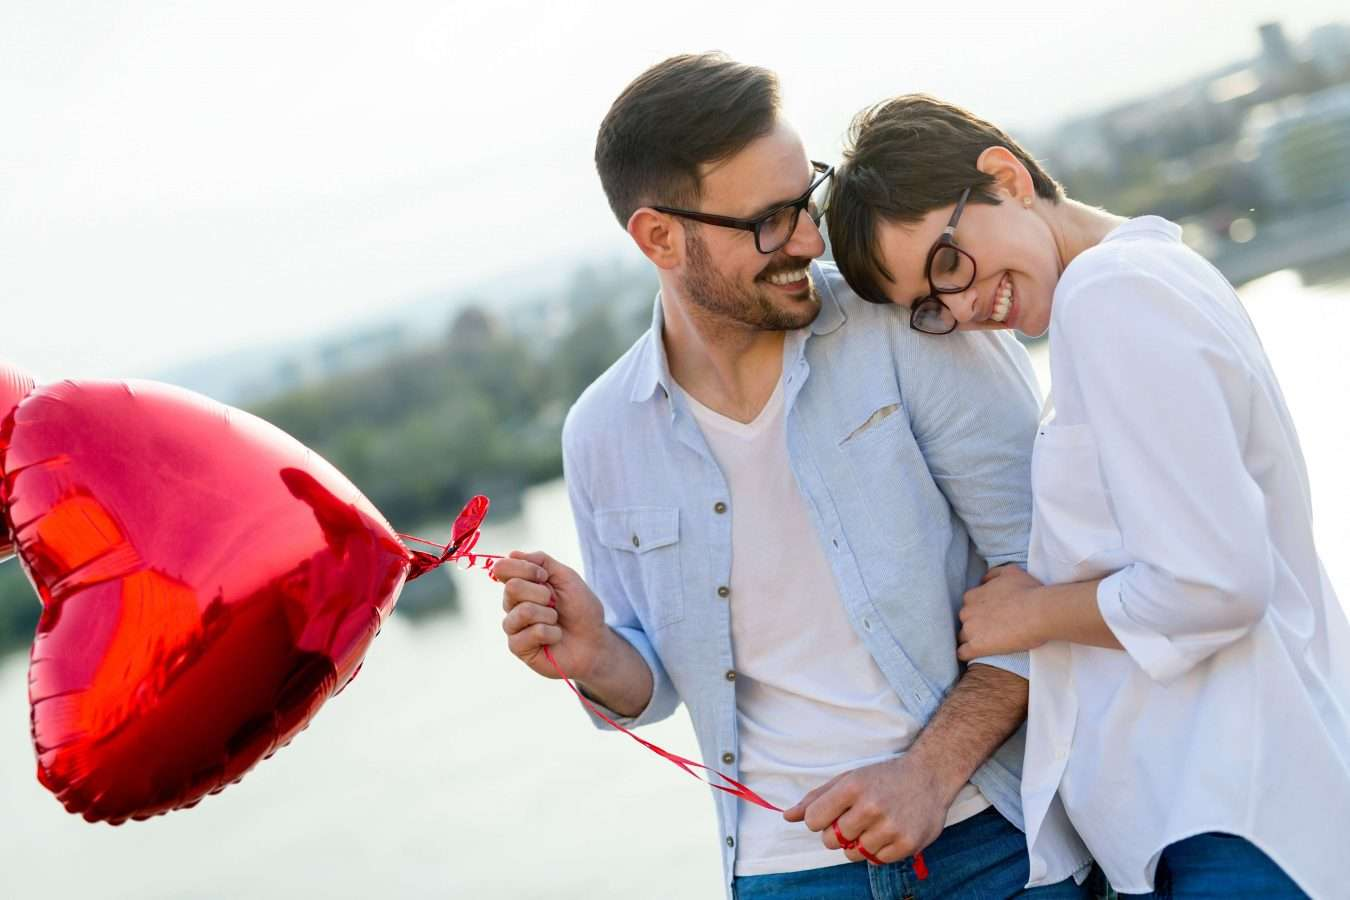 Young couple in love dating and smiling outdoor while holding heart baloons